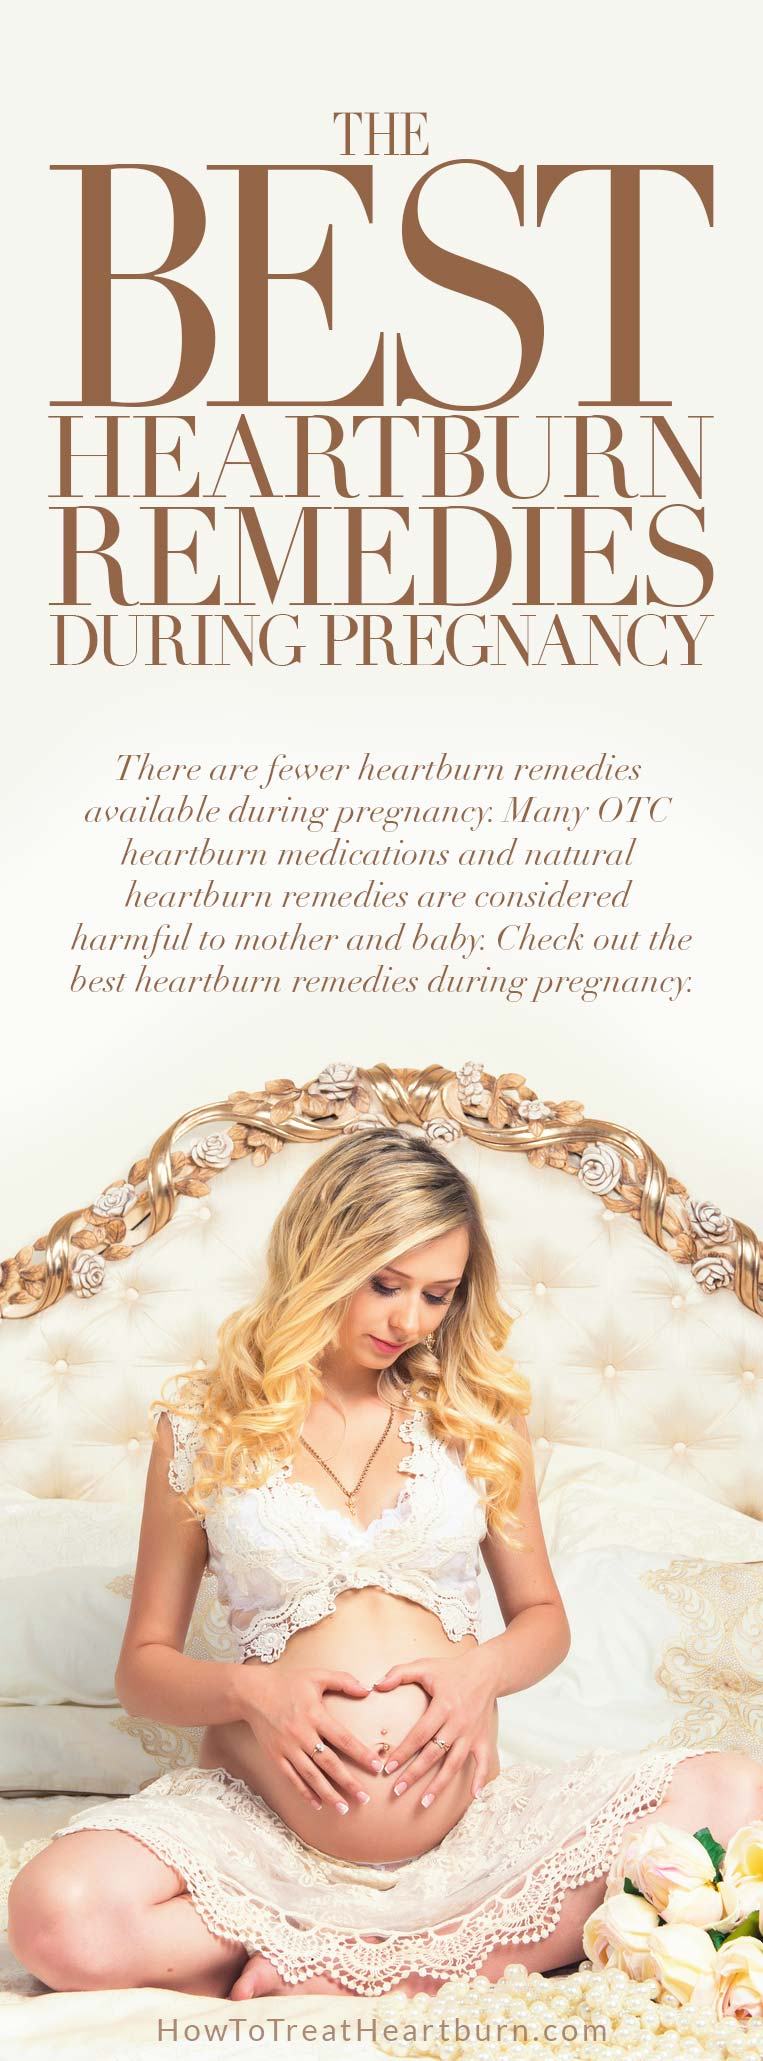 There are fewer heartburn remedies available during pregnancy. Many OTC heartburn medications and natural heartburn remedies are considered harmful to mother and baby. Check out the best heartburn remedies during pregnancy.